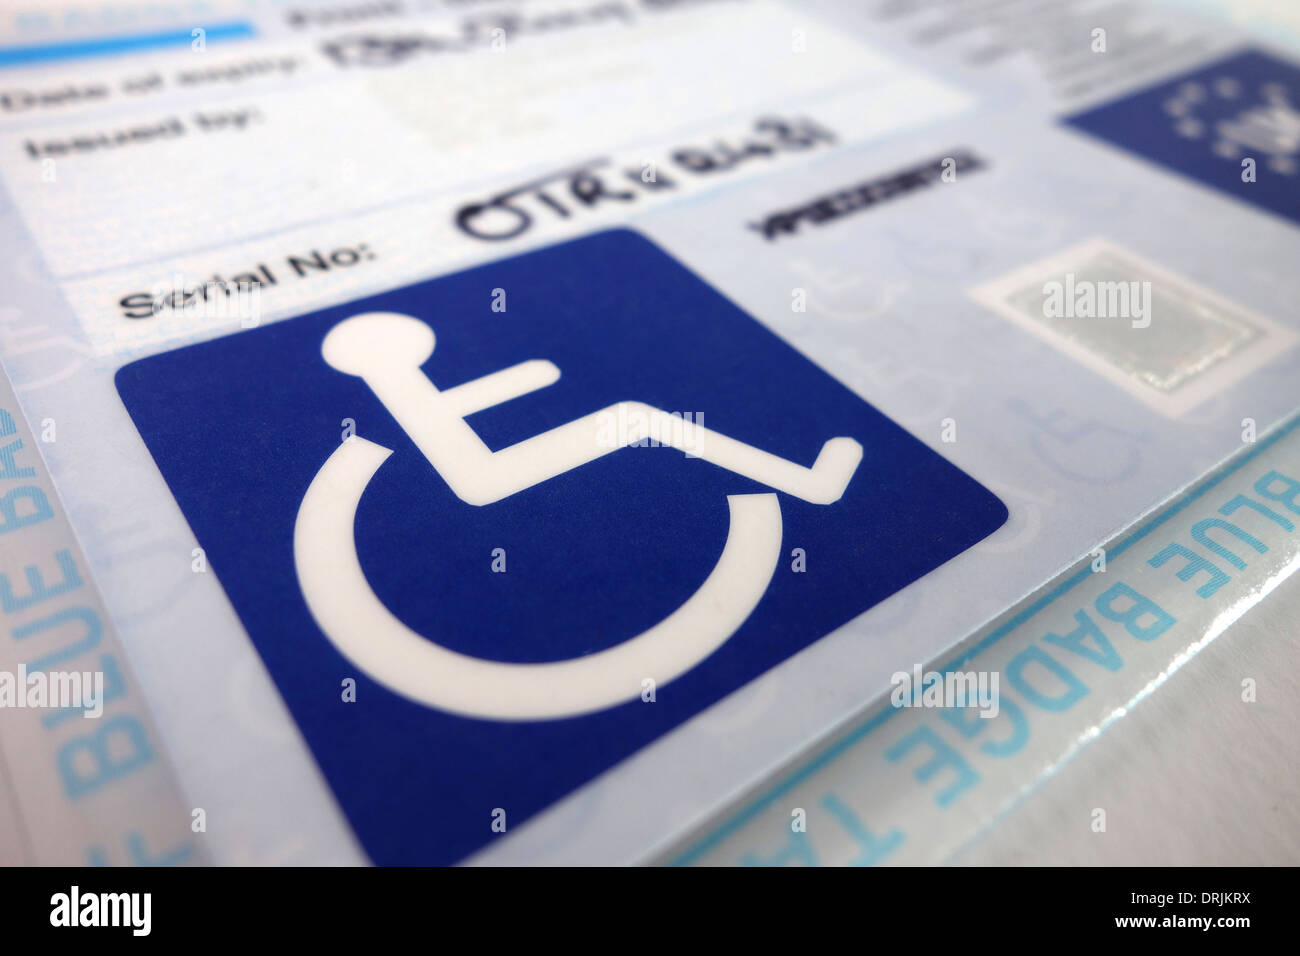 A disability blue badge - Stock Image